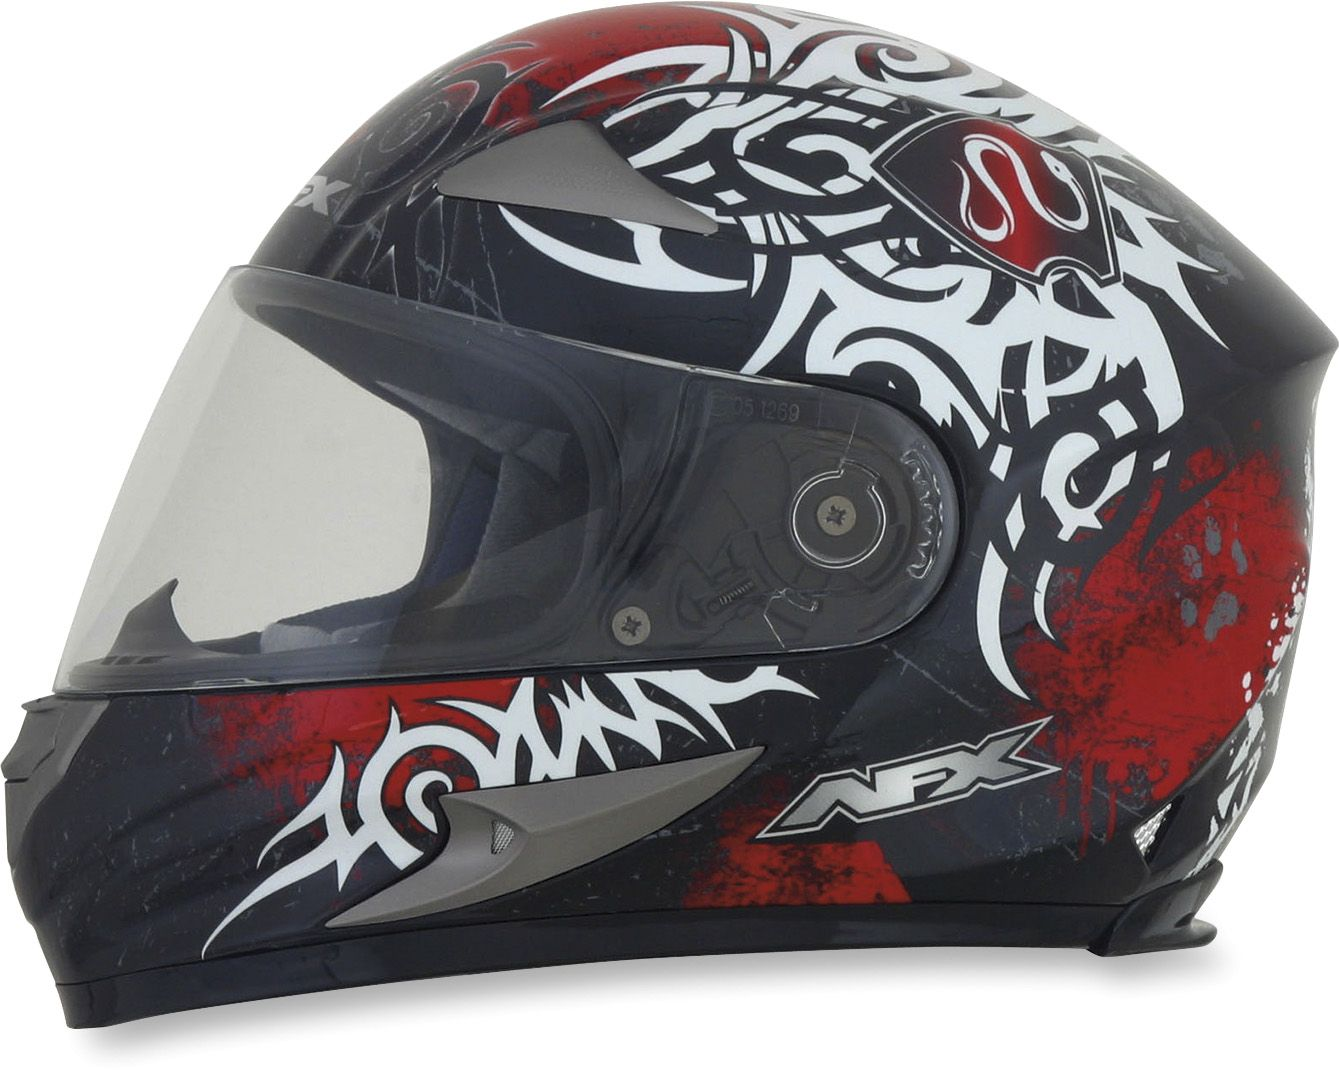 Fx90 red danger helmet from afx motorcycle riding gear